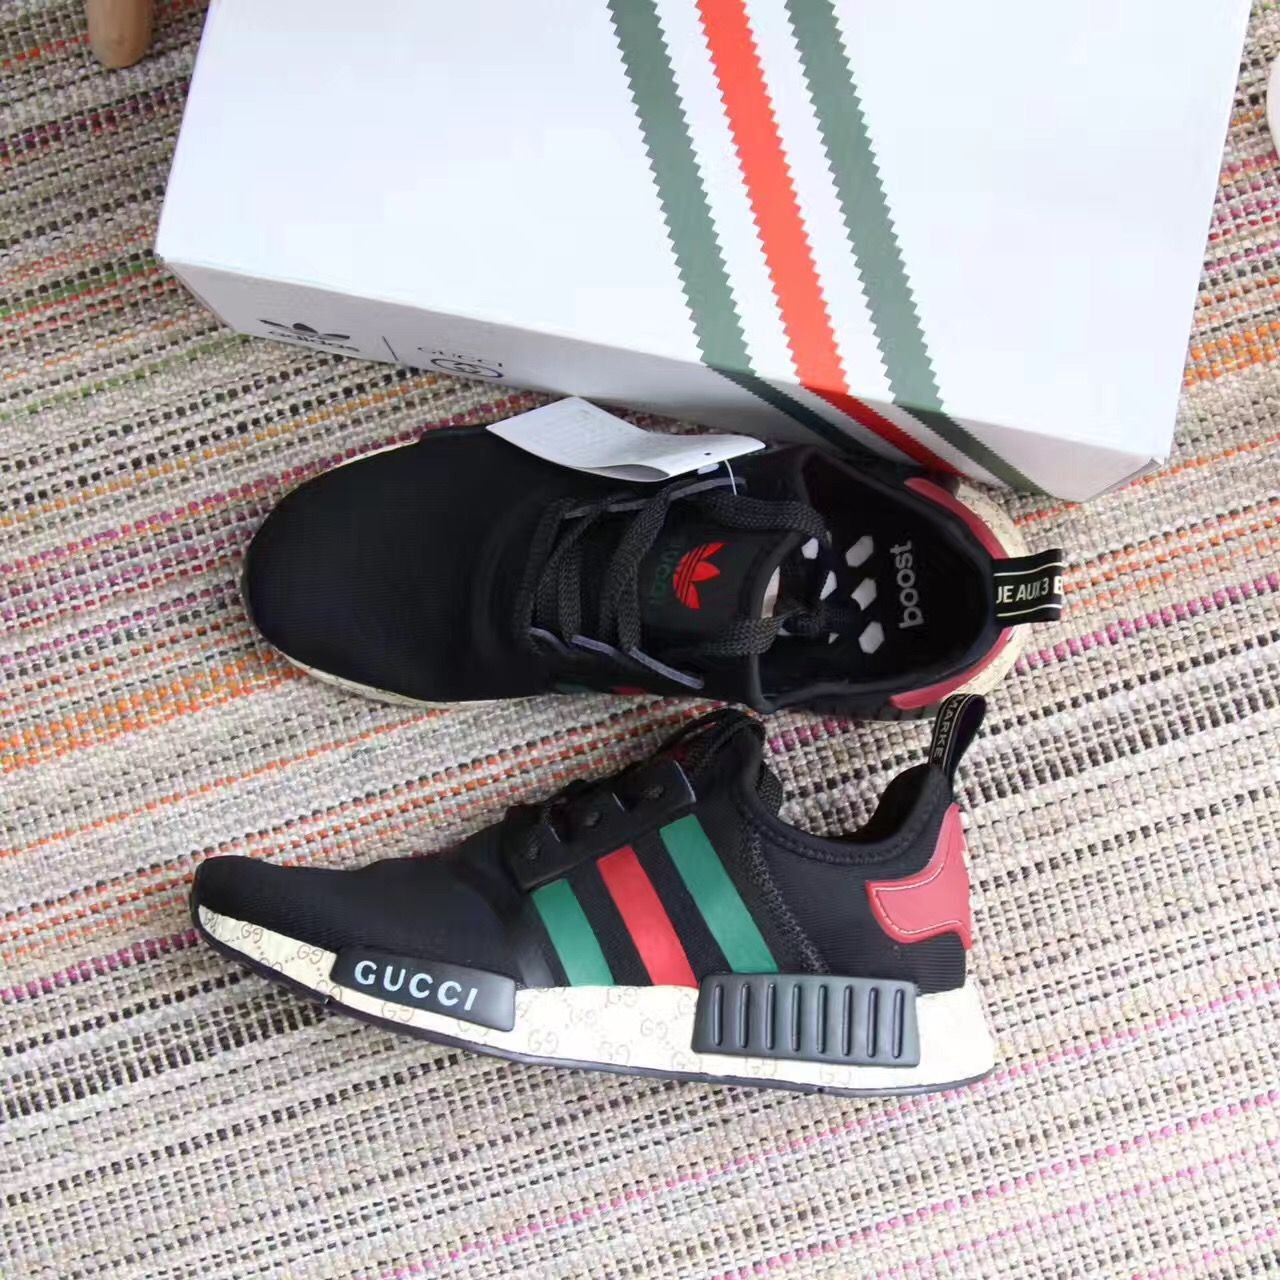 buy popular 1837e c54e7 Adidas   Gucci woman man unisex sport sneakers shoes